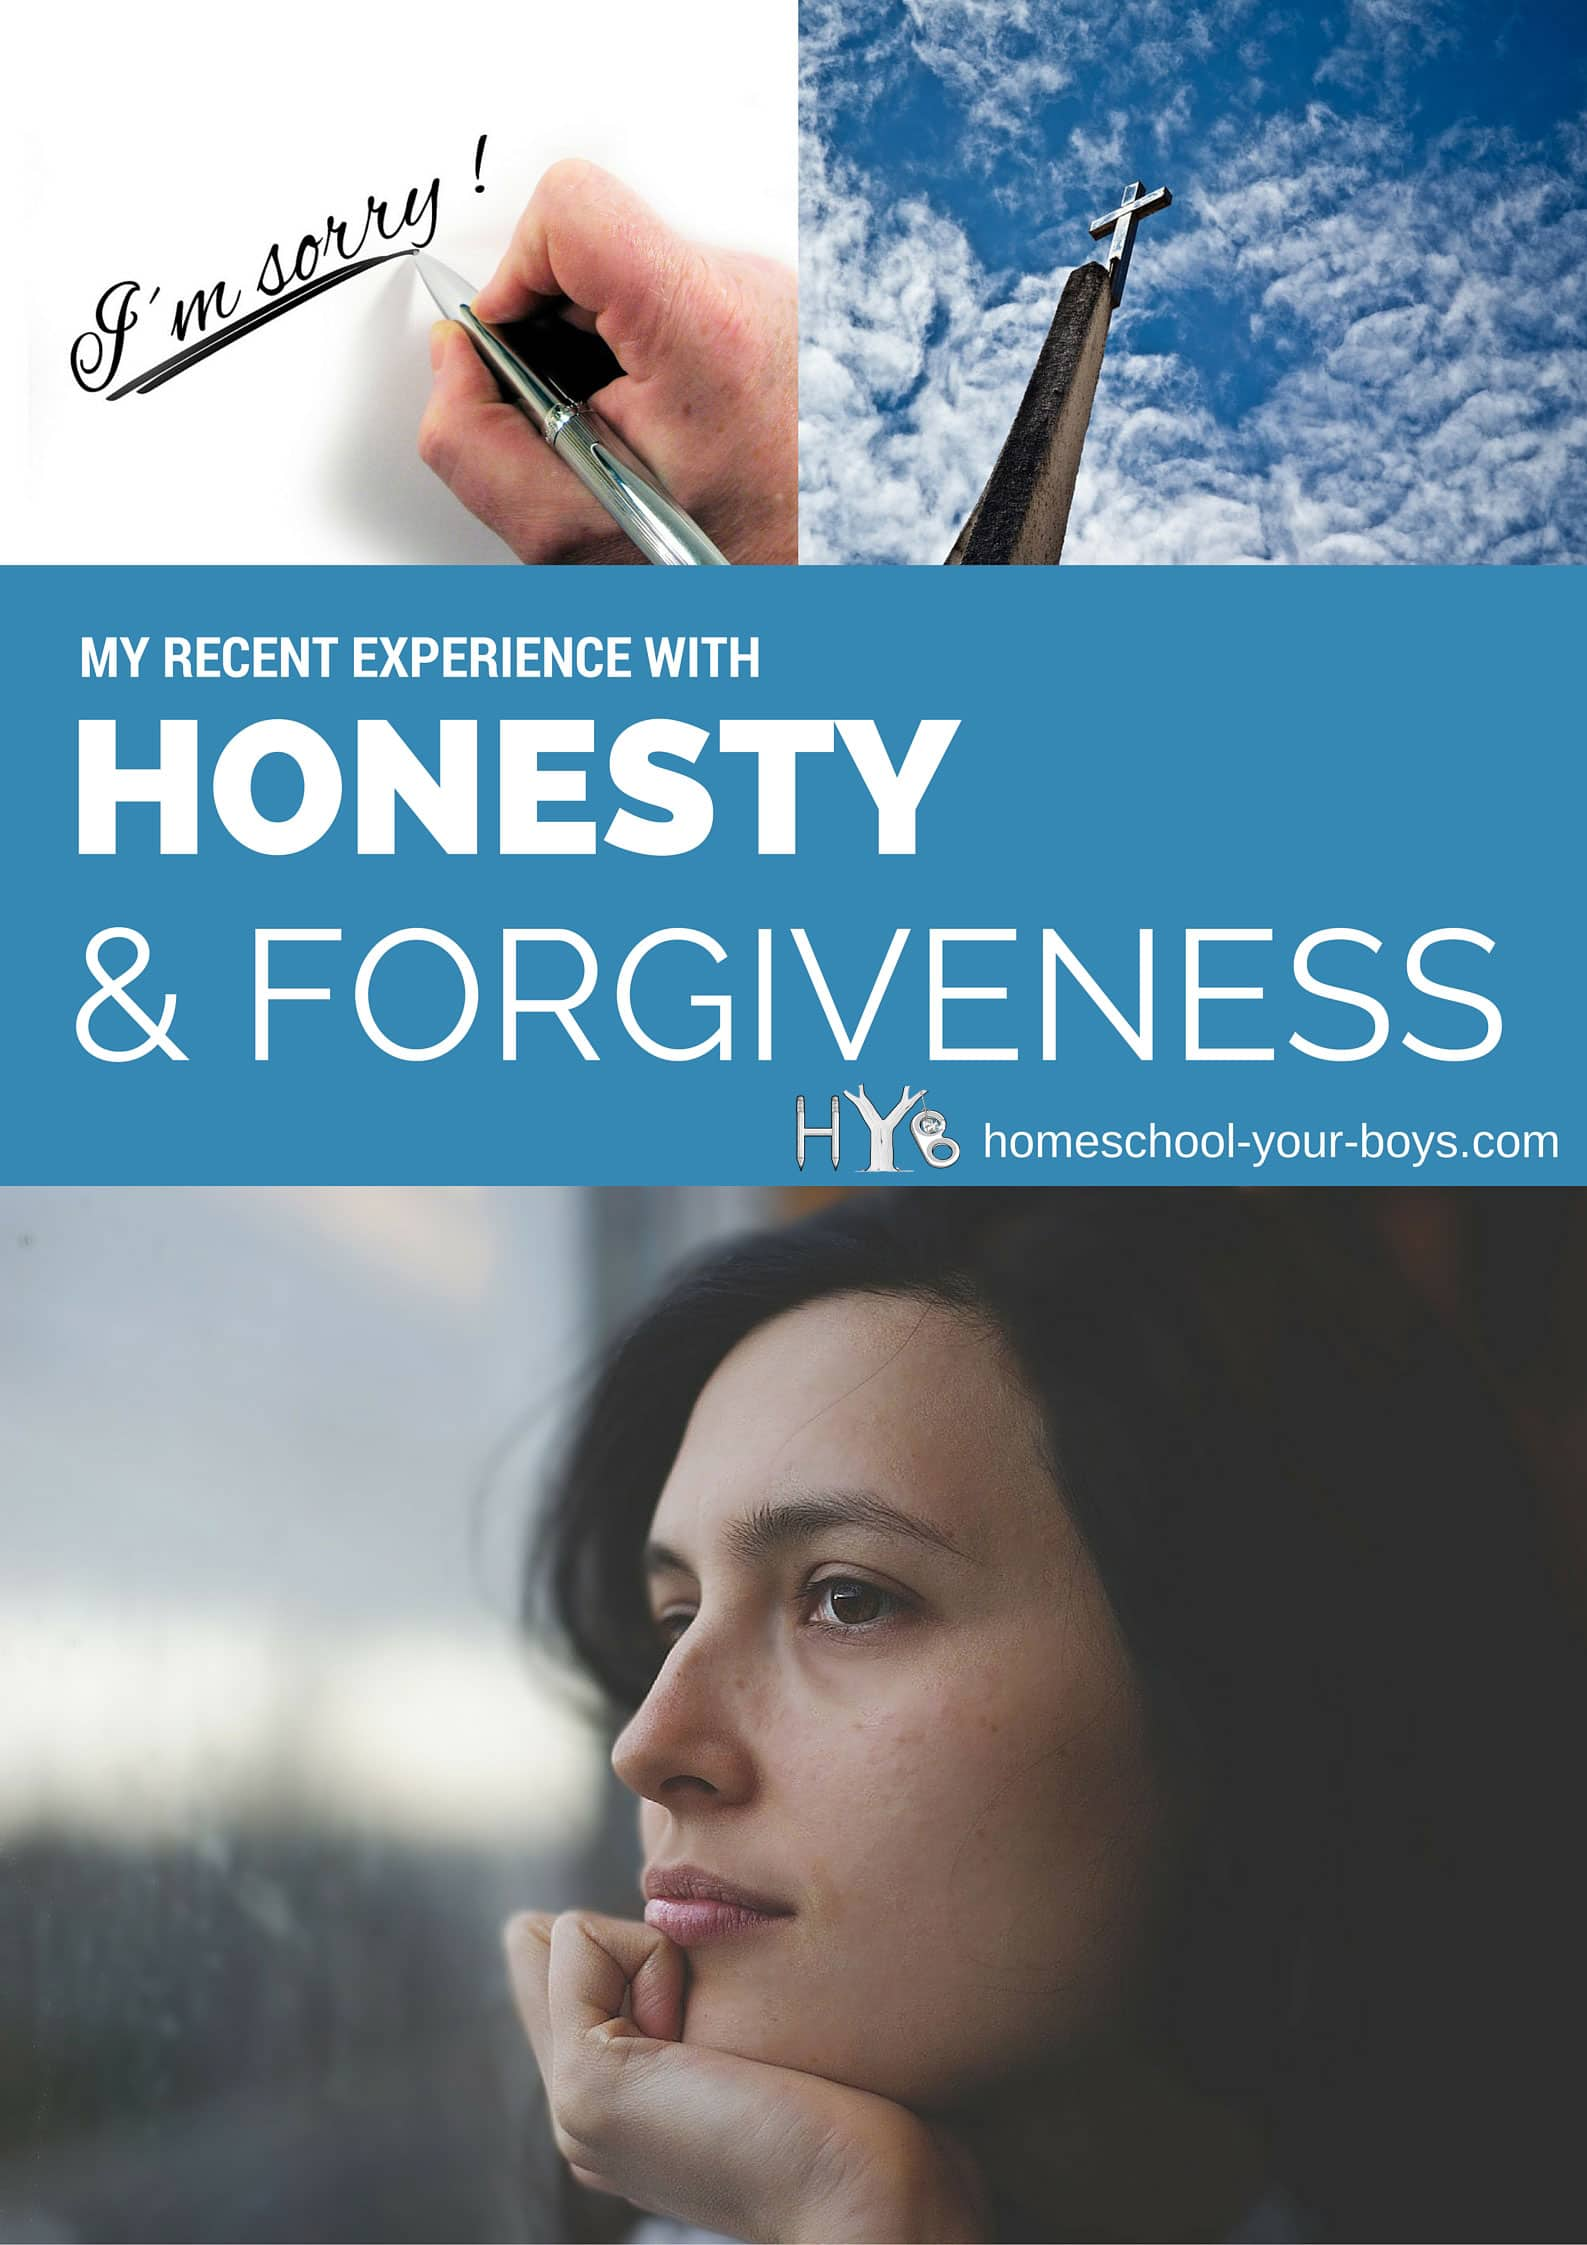 My Recent Experience with Honesty and Forgiveness